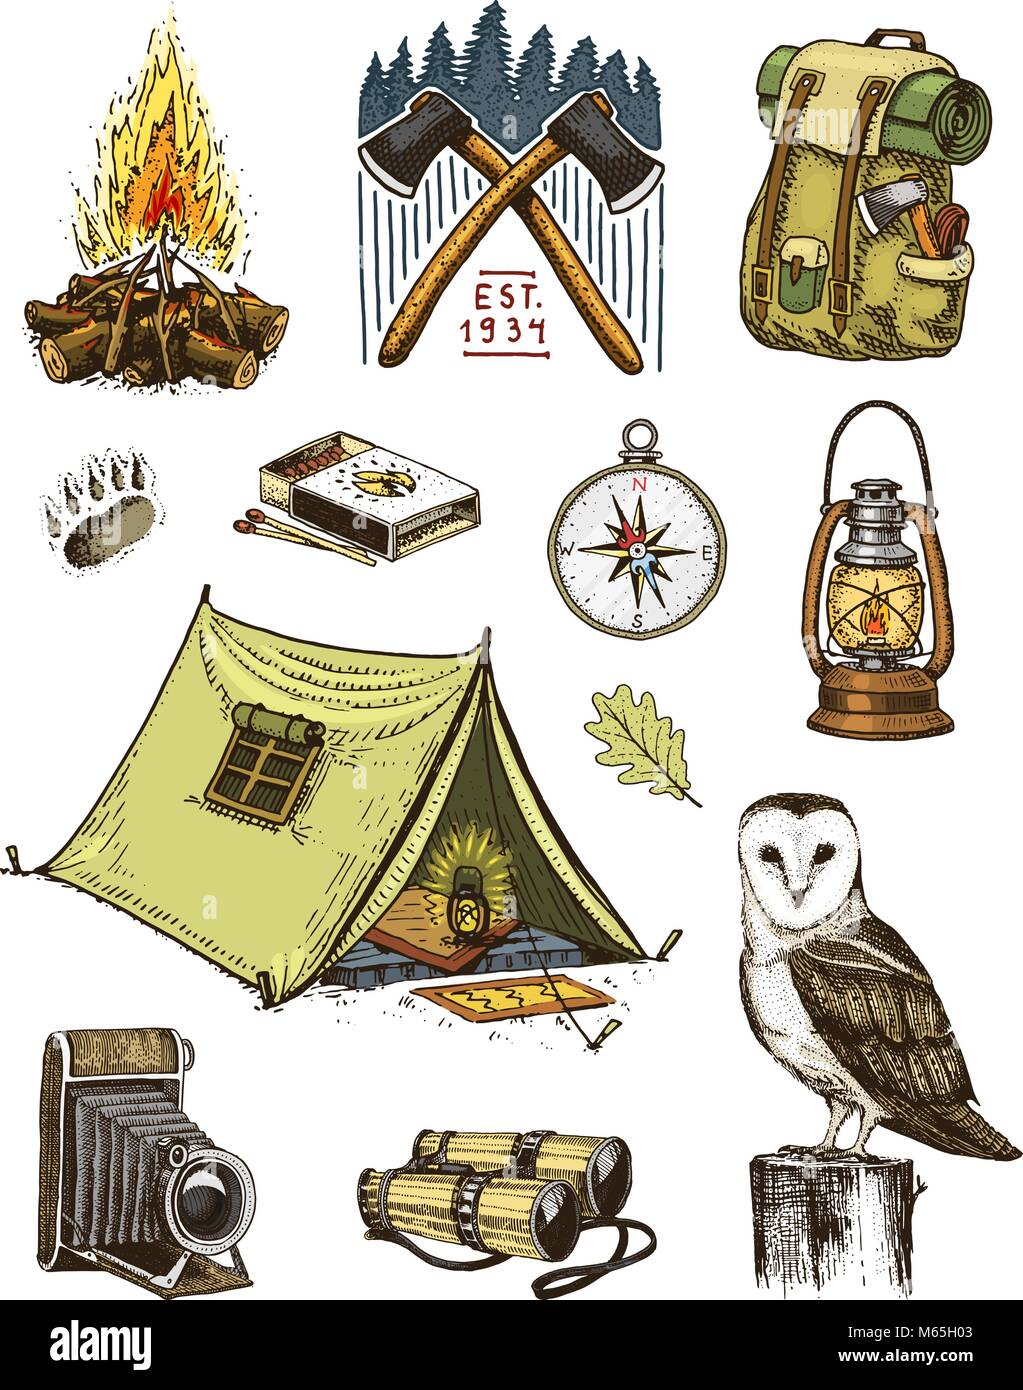 Camping Equipment Set Outdoor Adventure Hiking Traveling Man With Luggage Tourism Trip Engraved Hand Drawn In Old Sketch Owl And Binoculars